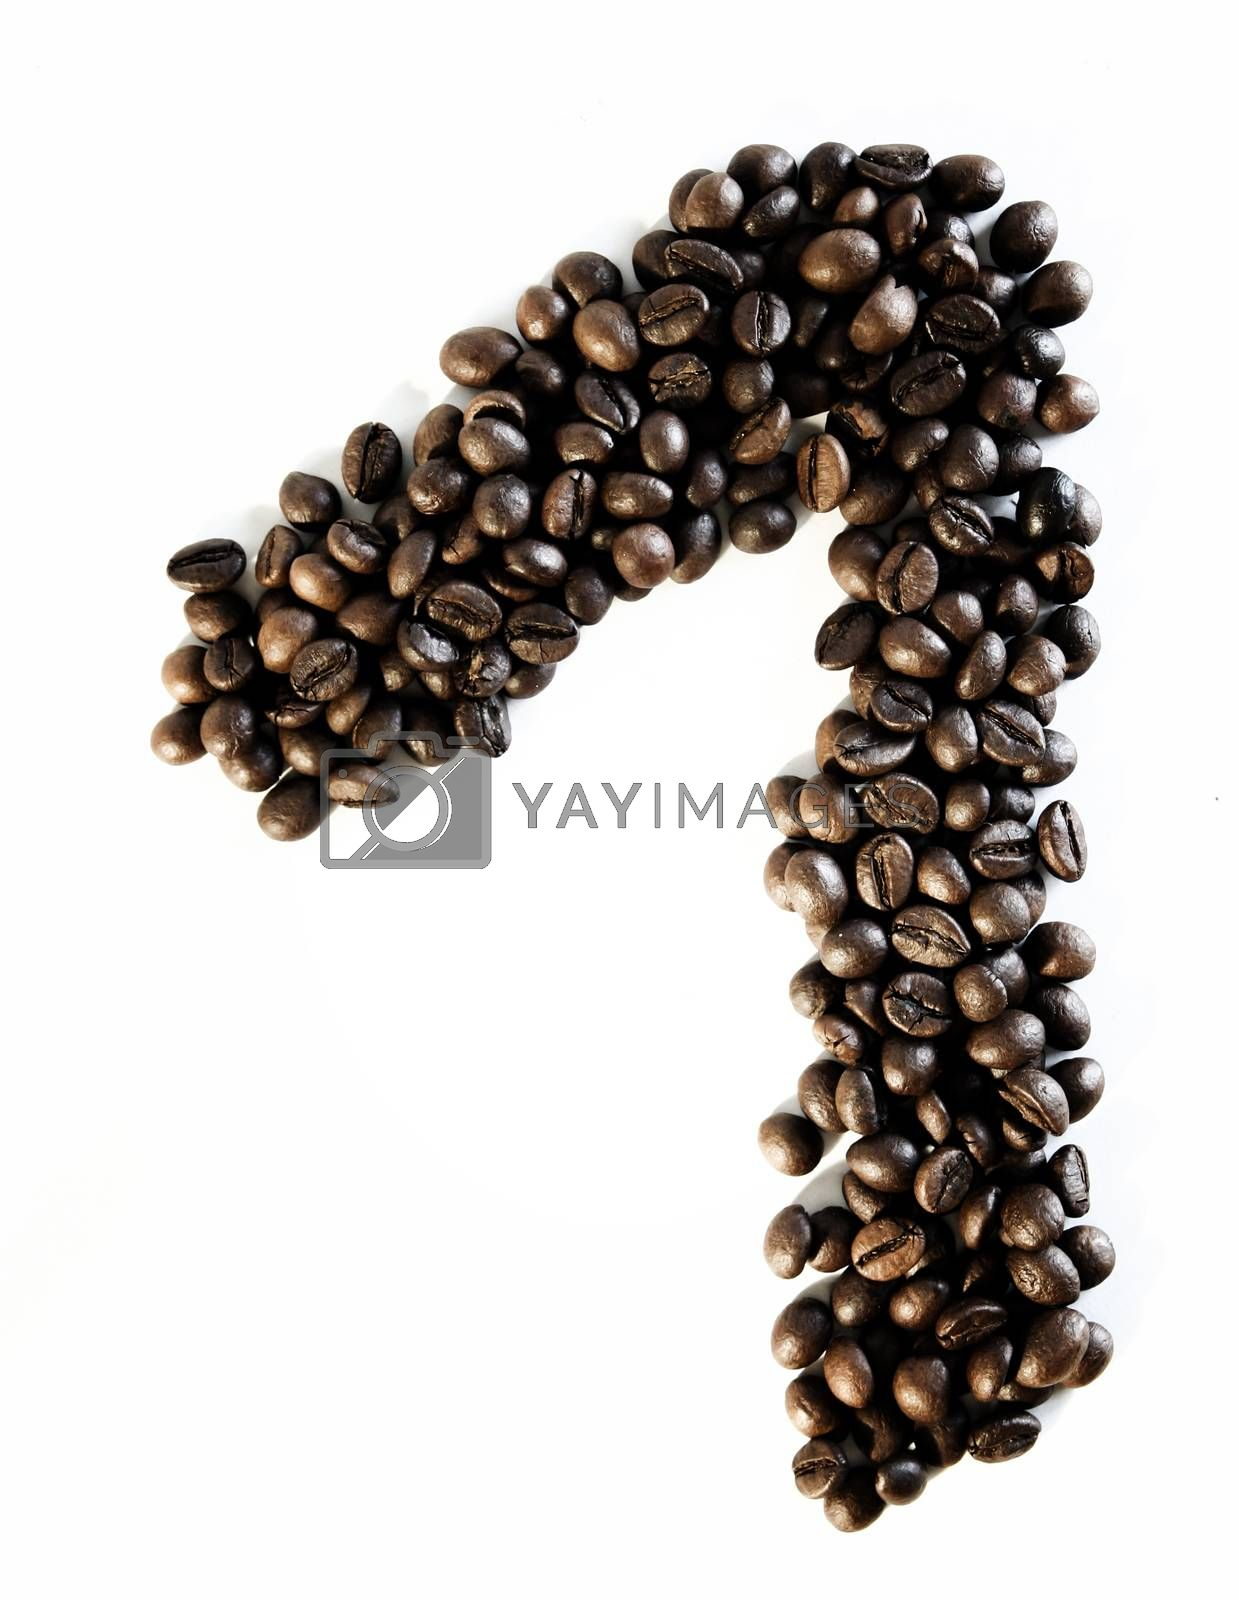 Numbers made from coffee beans